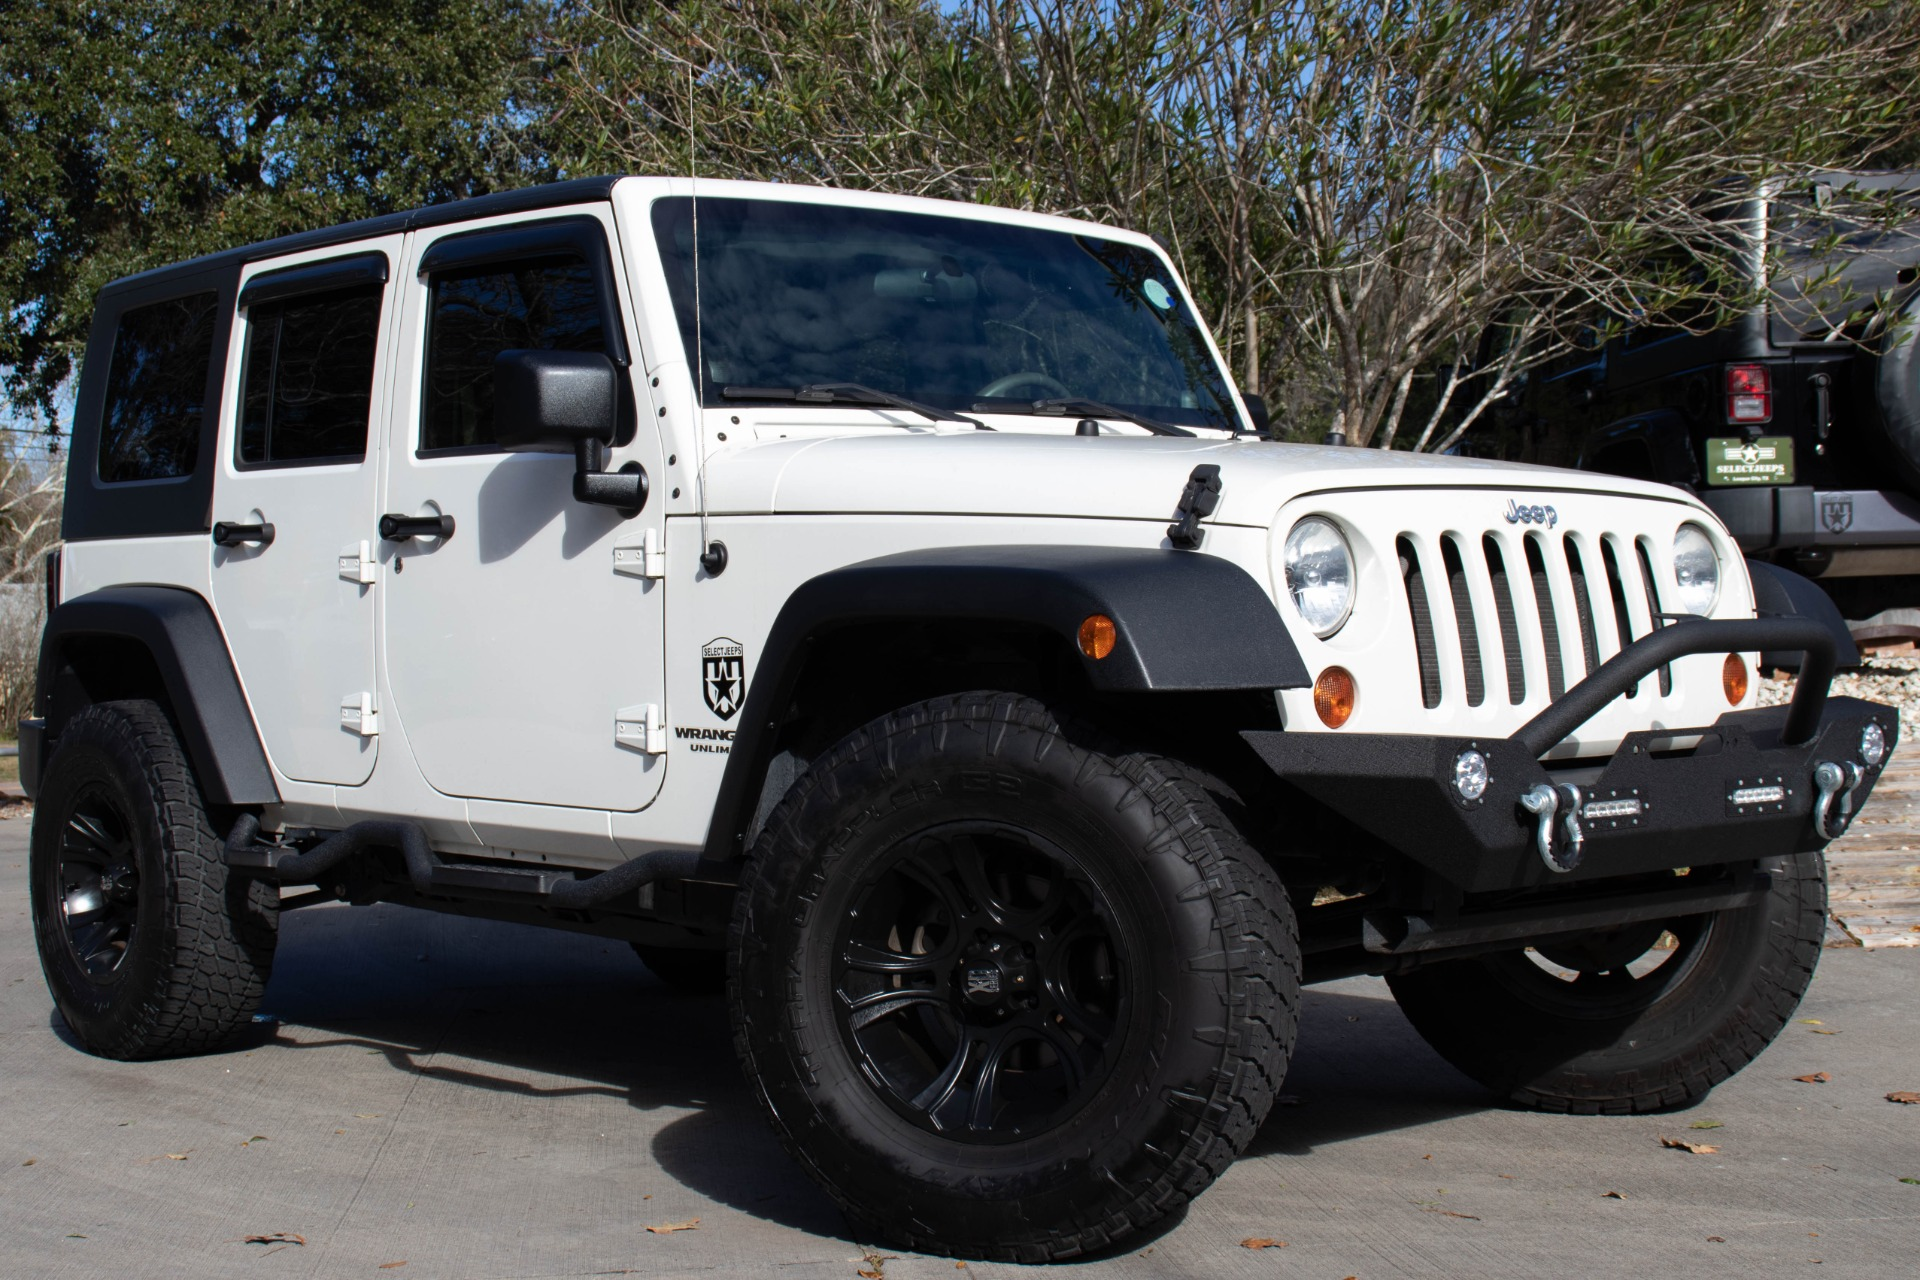 Used 2008 Jeep Wrangler Unlimited X For Sale ($18,995 ...